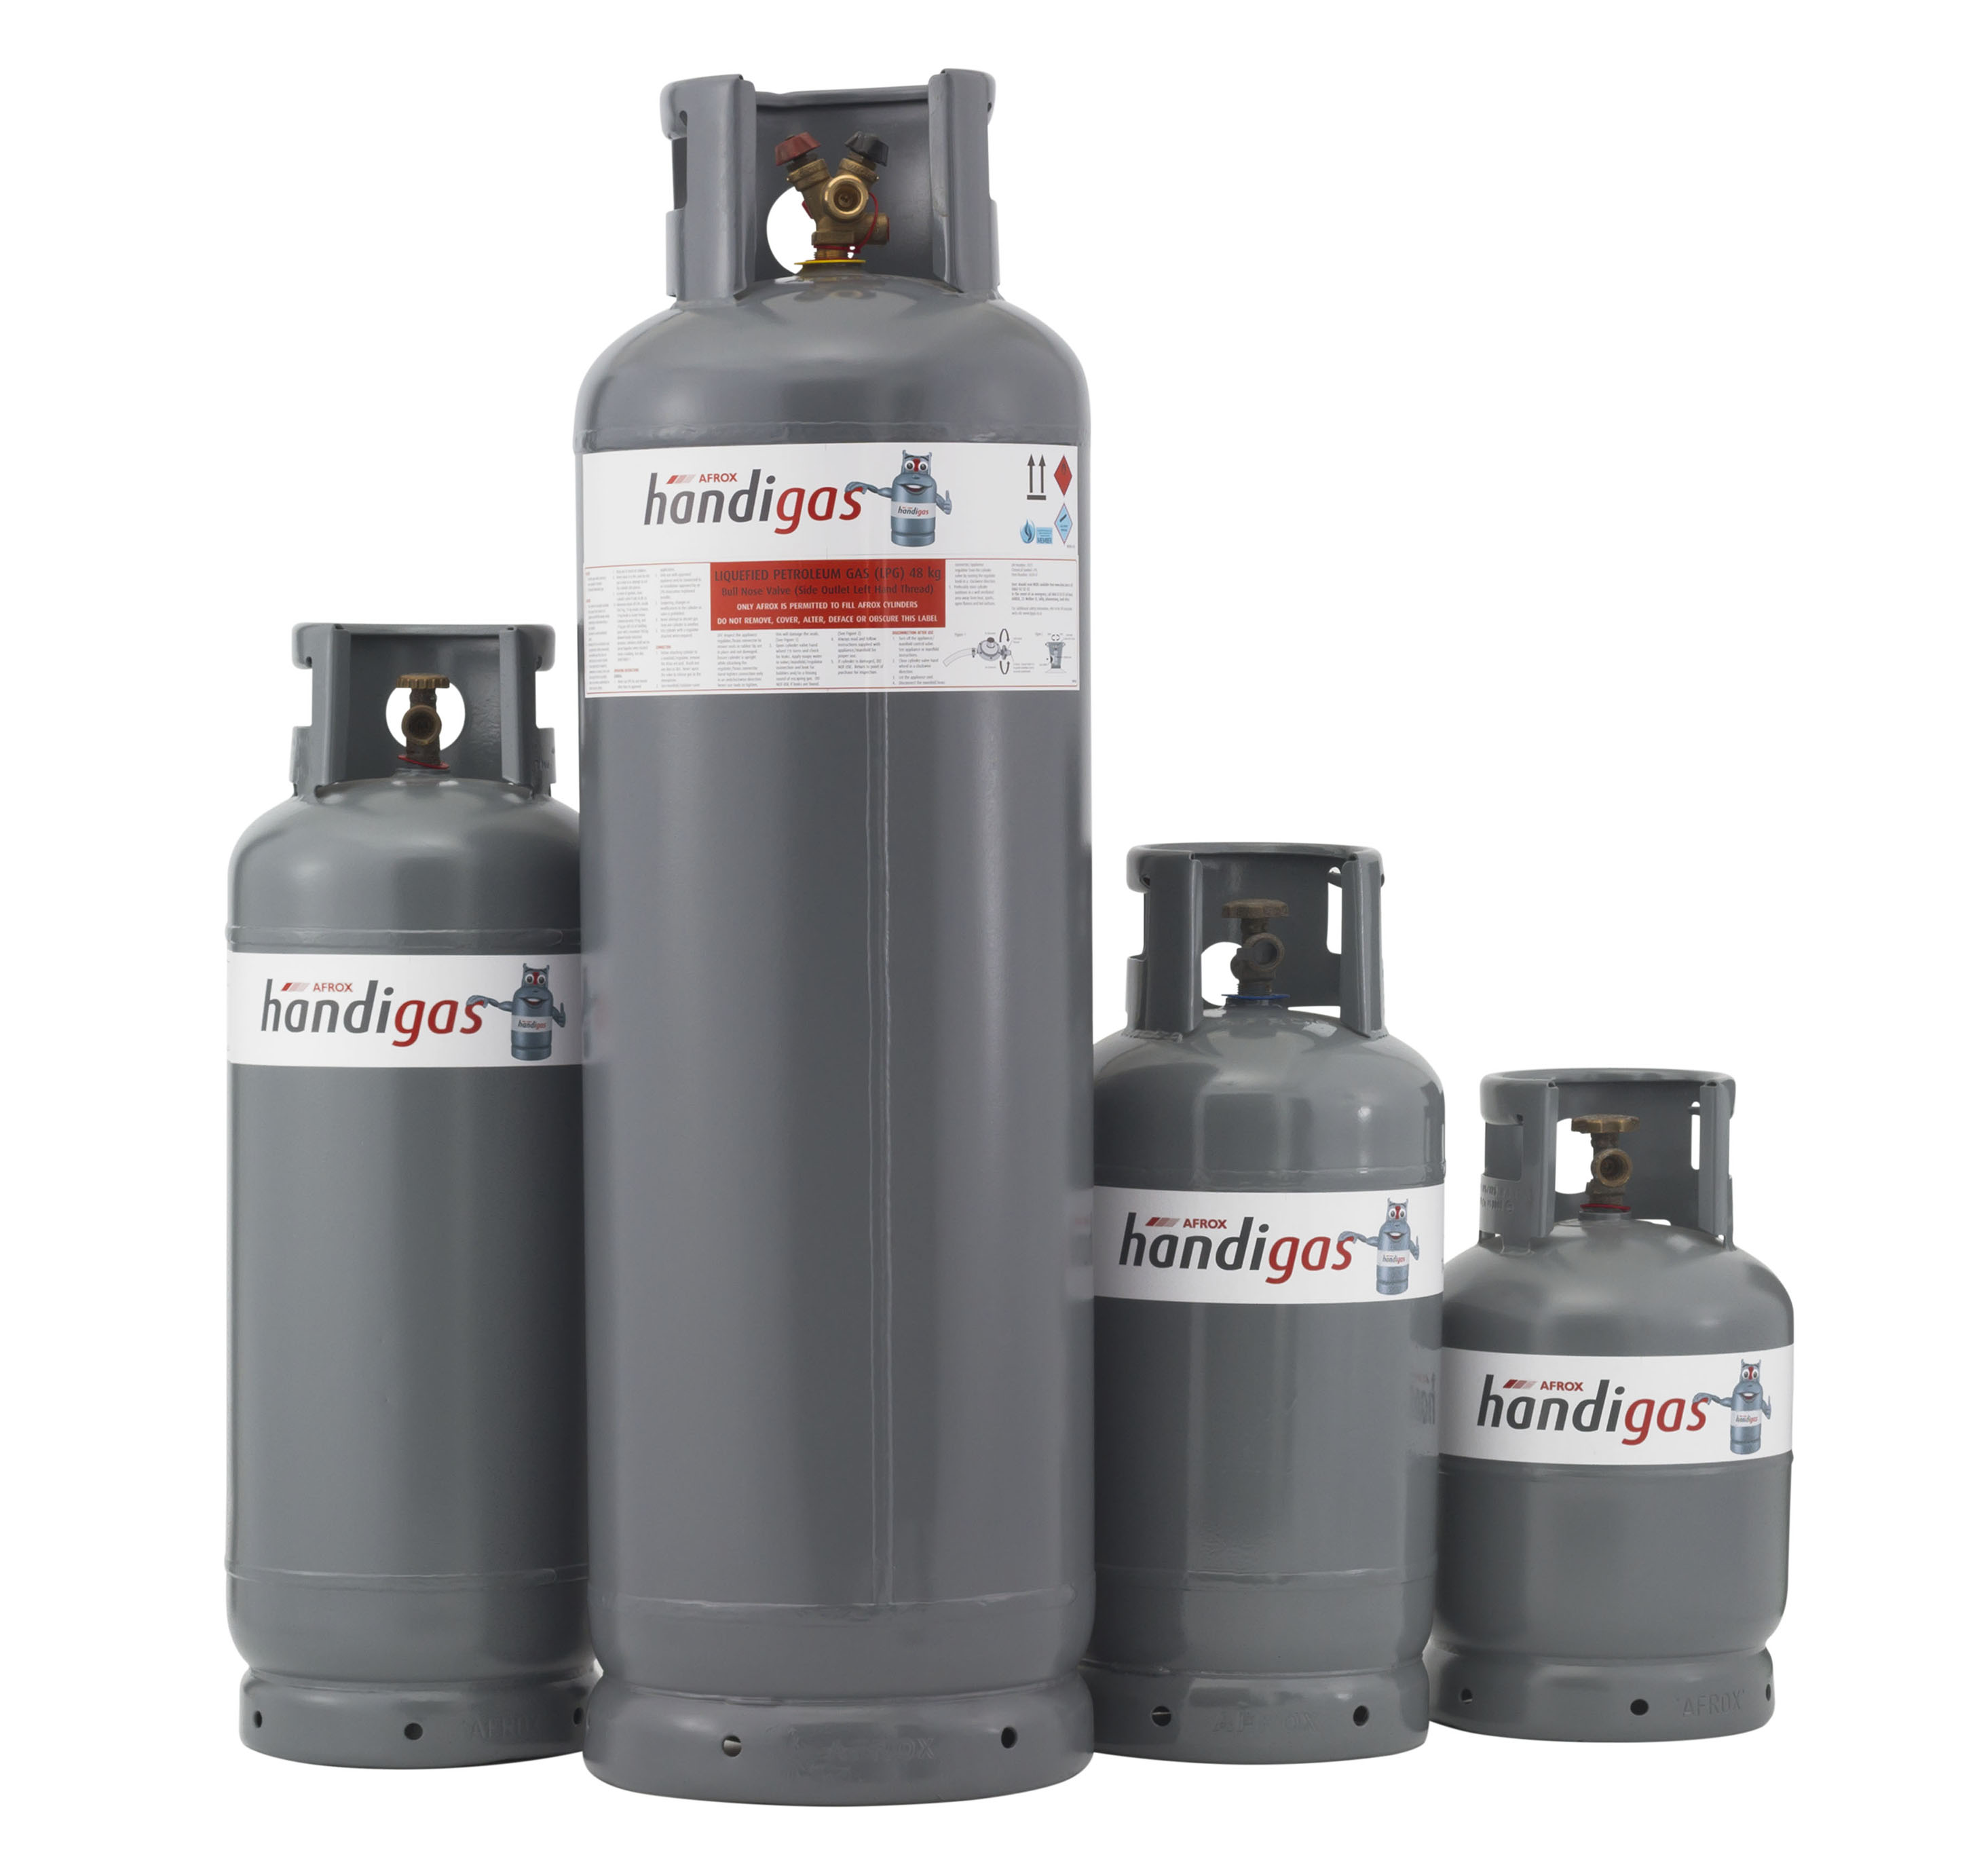 Afrox Has Supplied Its Tried And Trusted Handigas Lpg Range To Domestic Consumers For Years